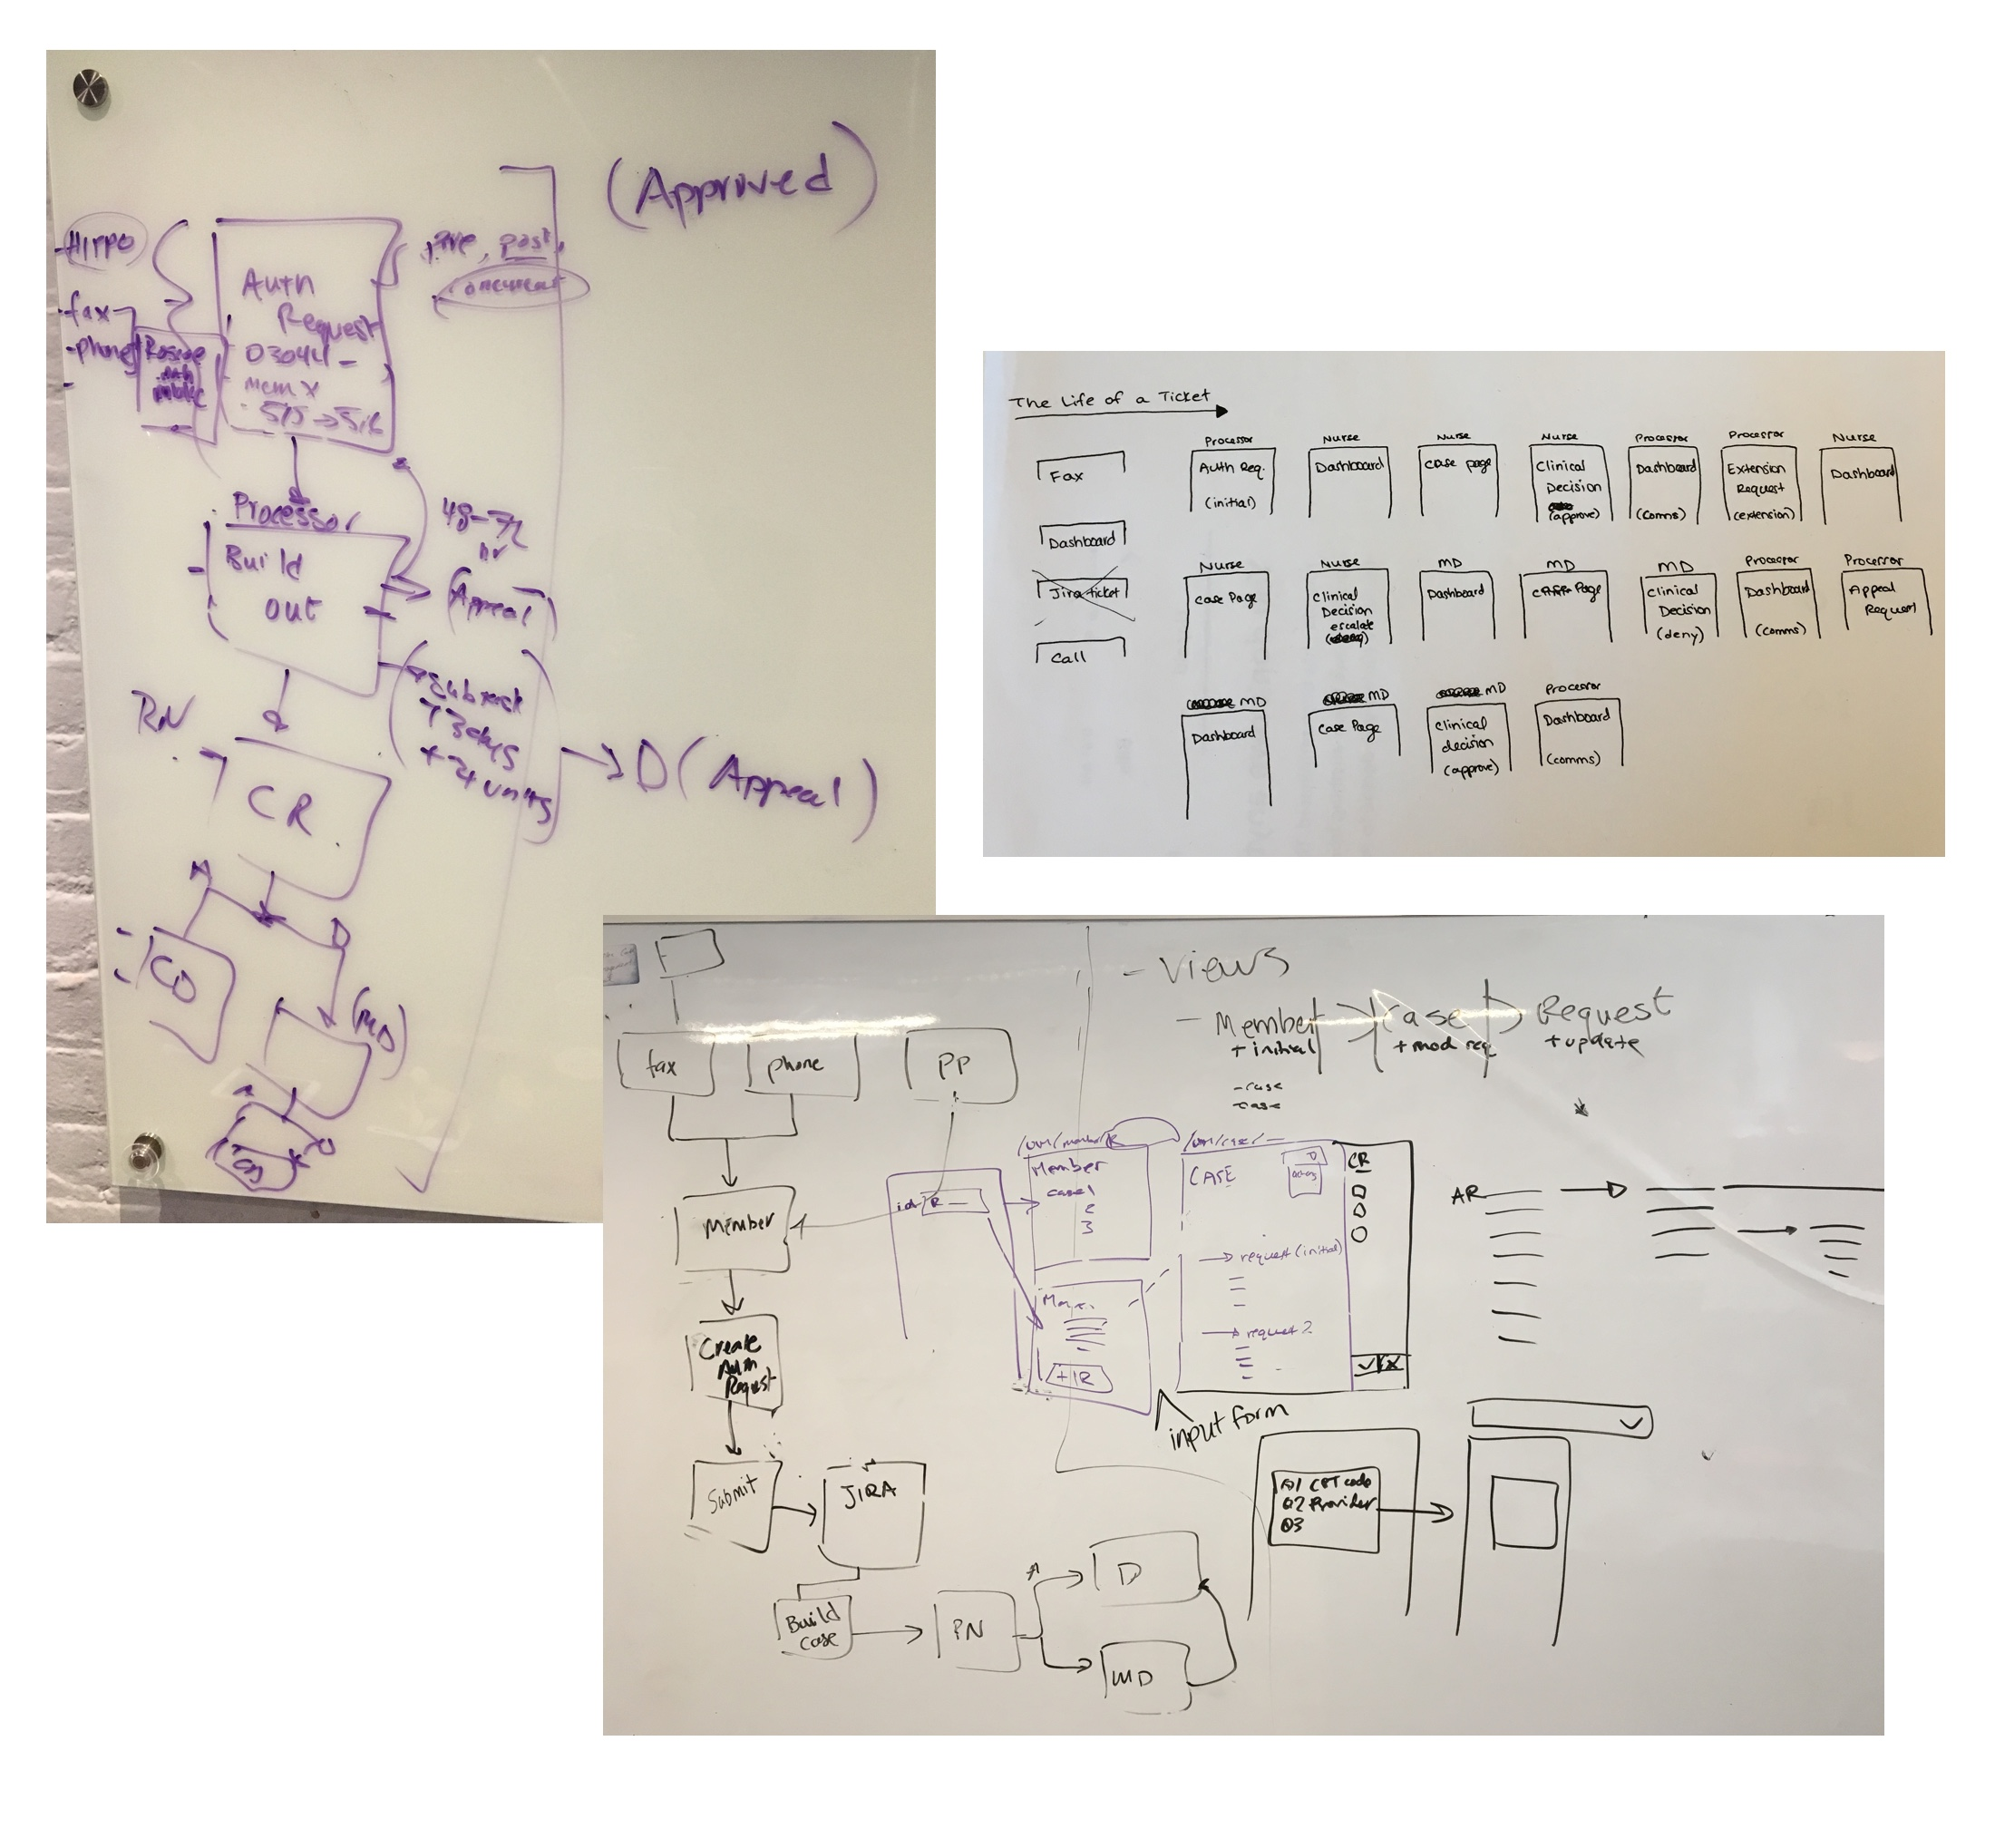 Collaboratively sketching out one of the many workflows with our users